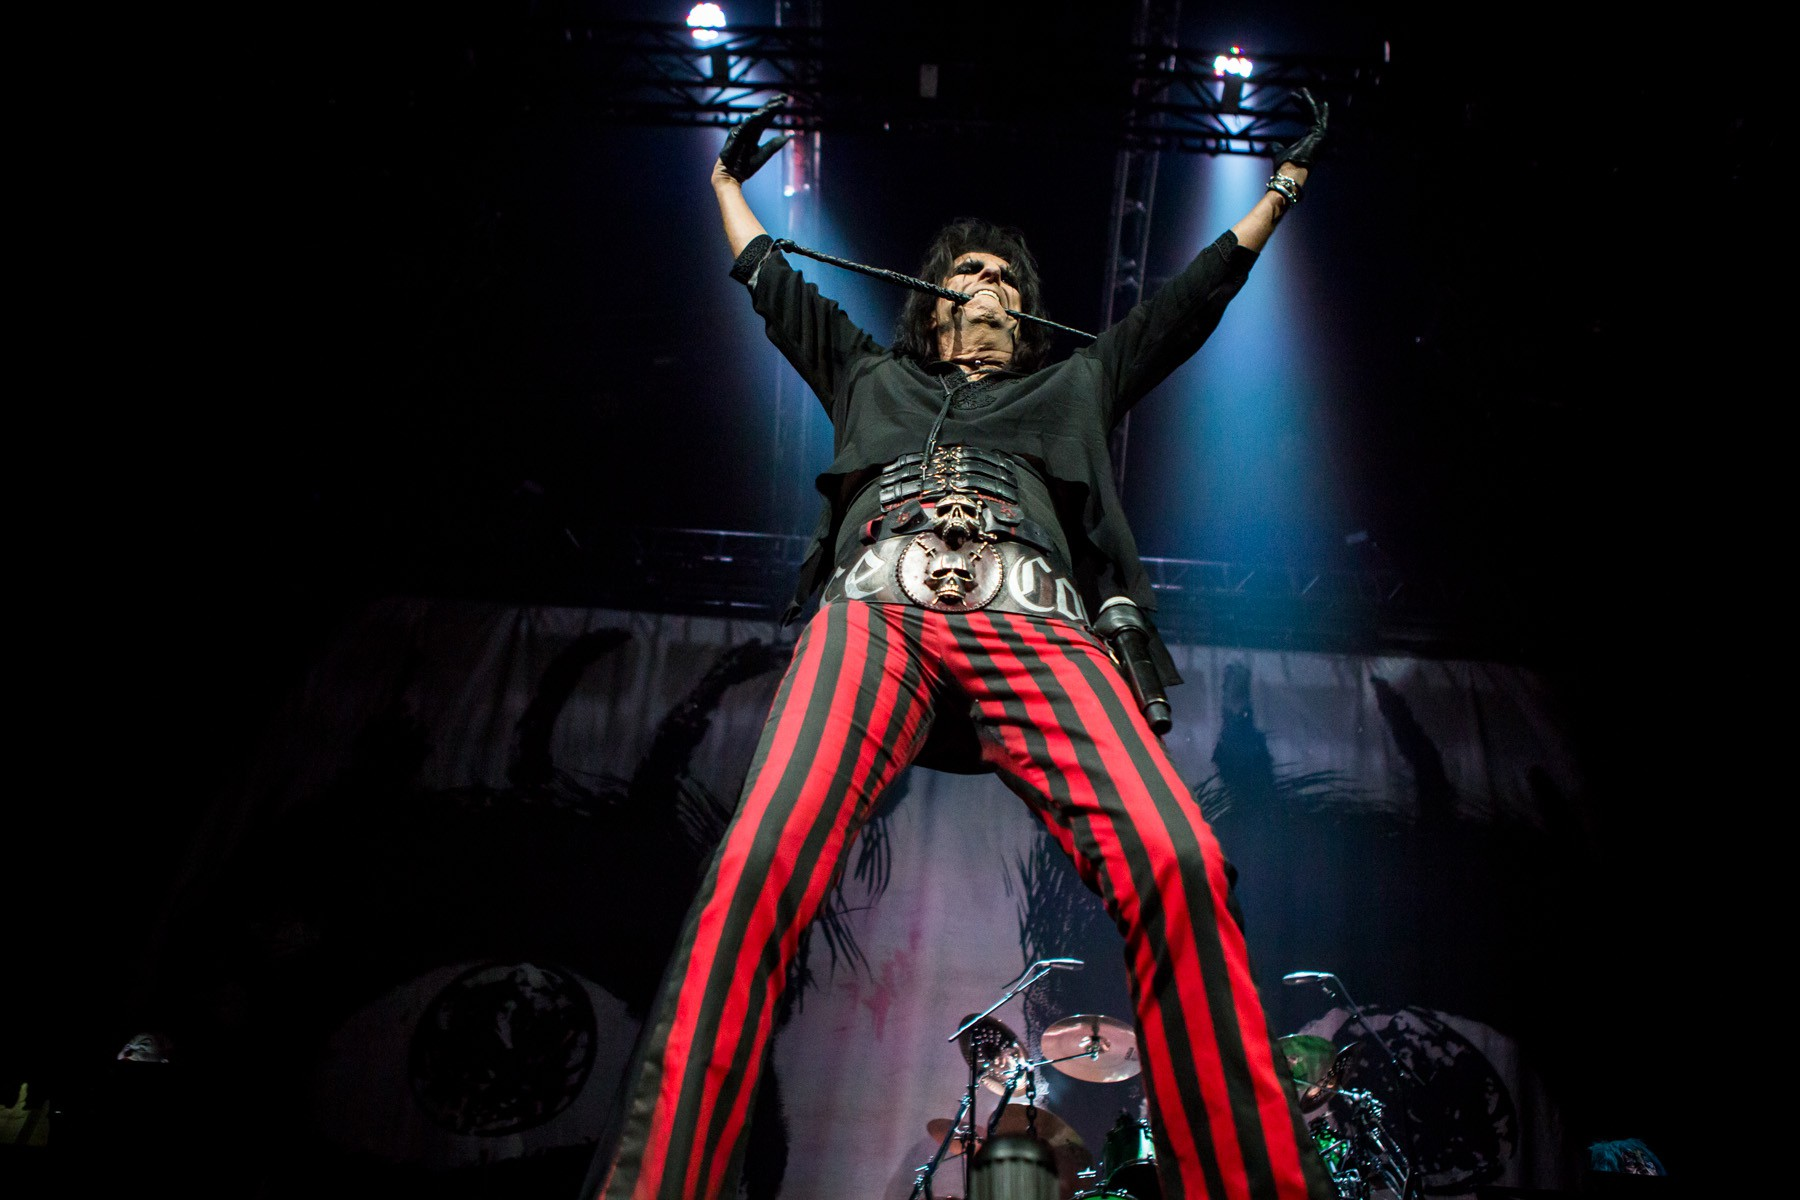 Alice Cooper at Talking Stick Resort Arena, 12/19/16